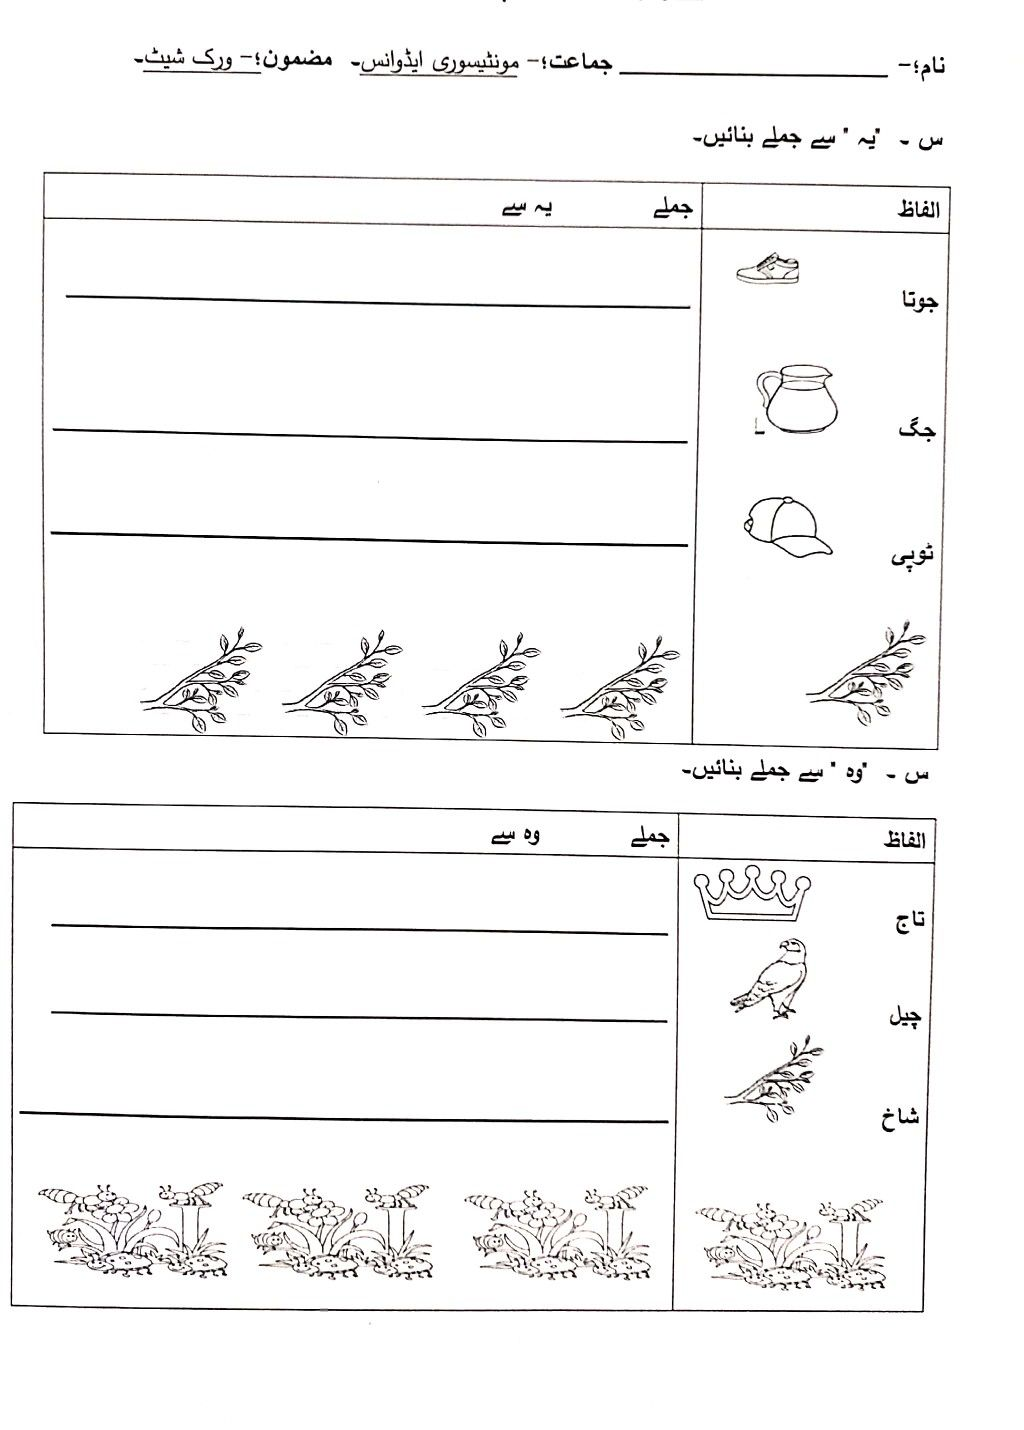 small resolution of Urdu 5th Grade Worksheet   Printable Worksheets and Activities for  Teachers